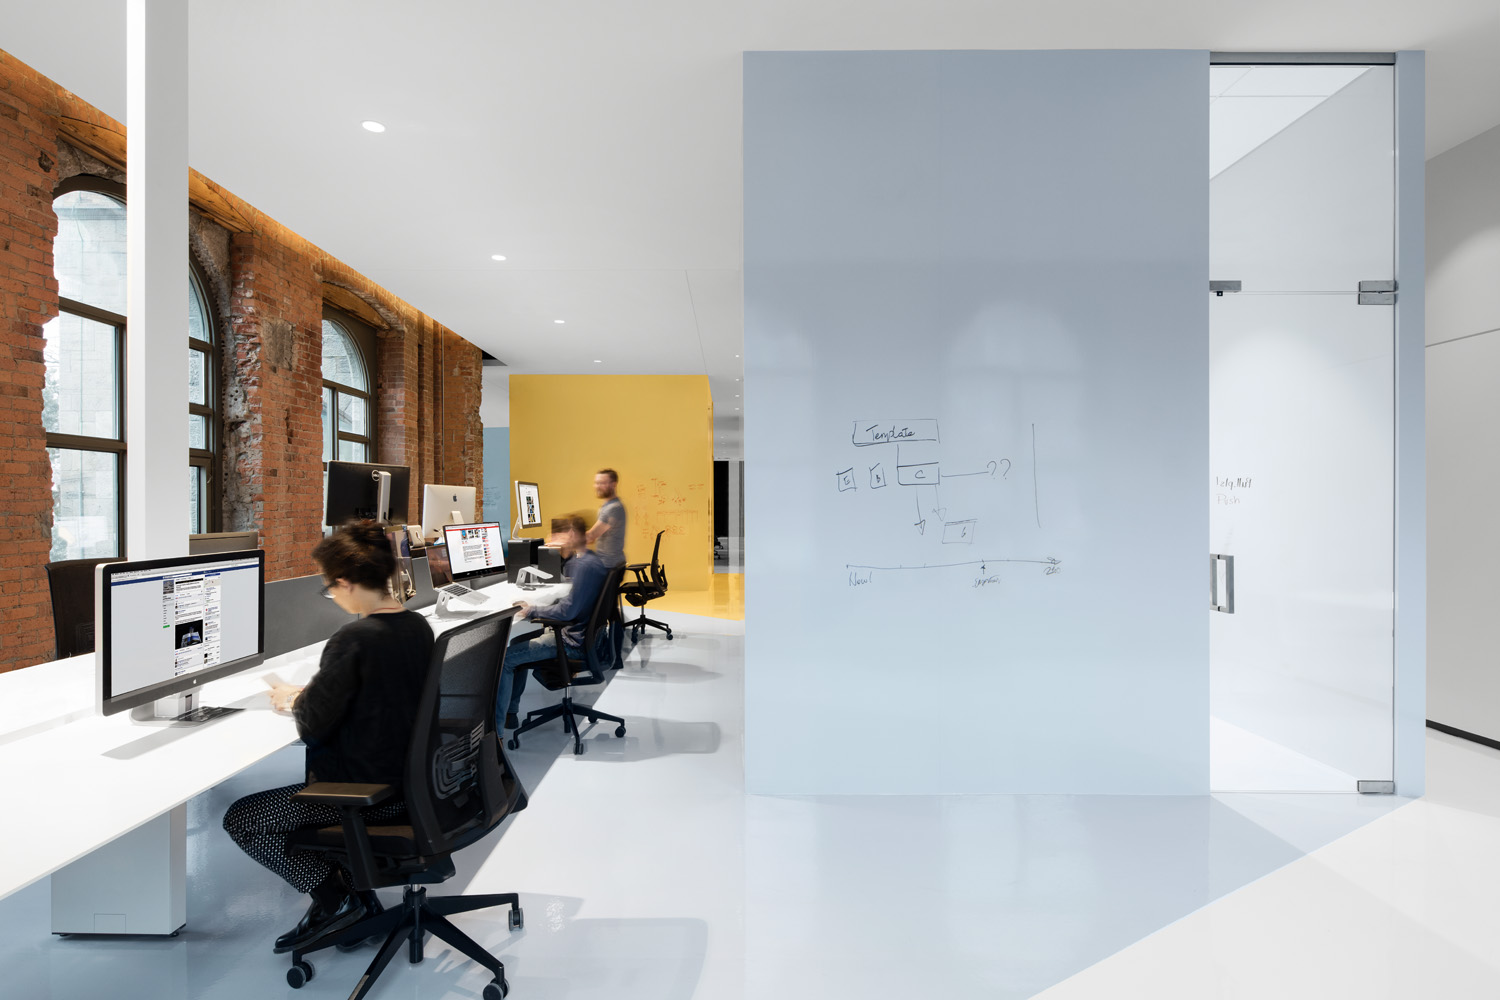 © Adrian Williams courtesy ACDF Architecture On the first floor of the west wing, a series of open spaces provides workstations and meeting rooms, like an archipelago of multiple islands, each characterized by a different pastel color shade.